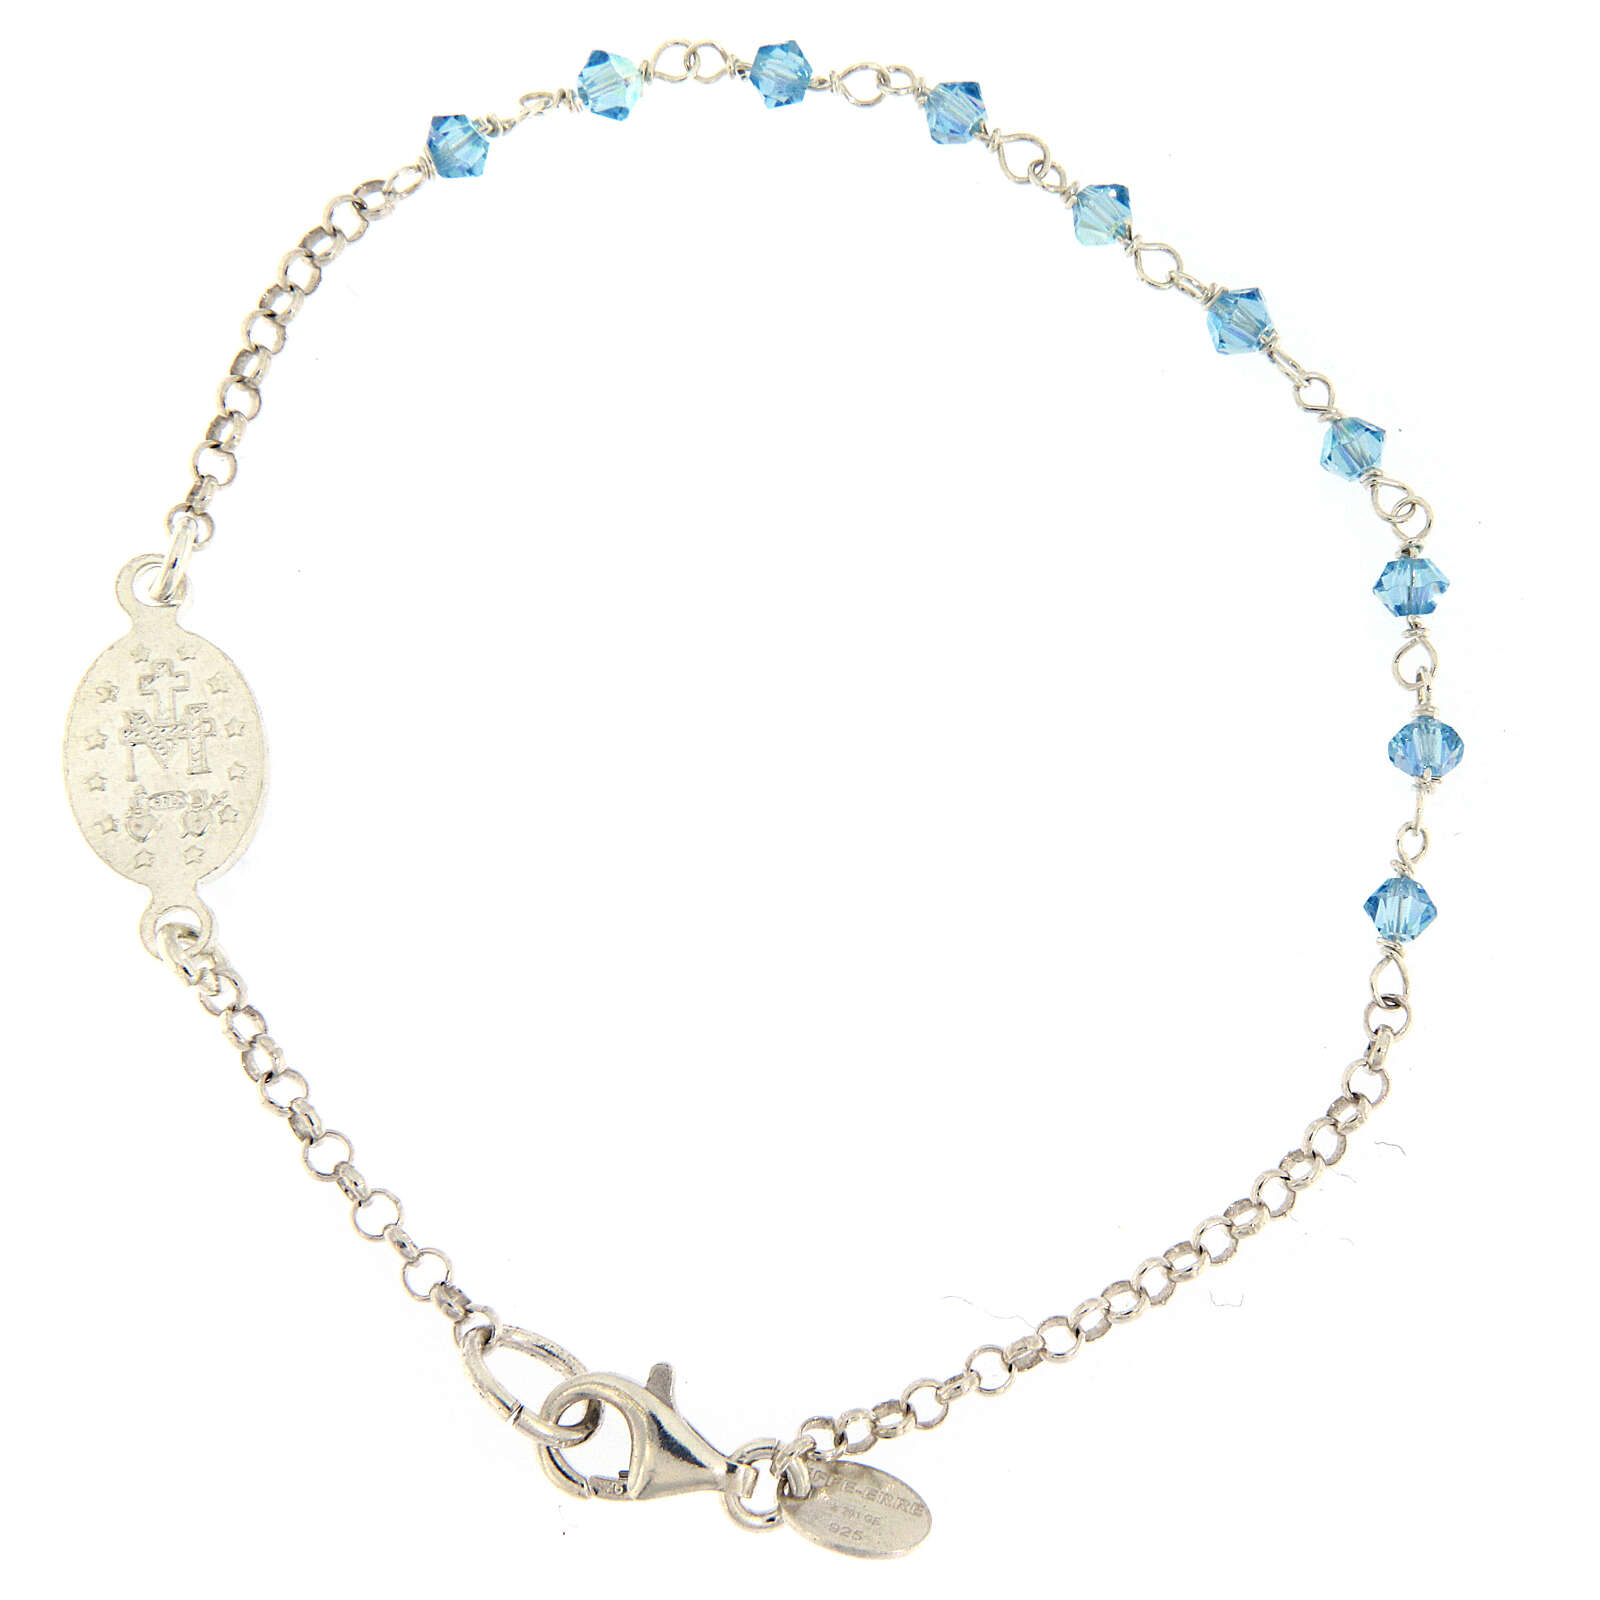 Sterling silver bracelet with Miraculous Mary medal Swarovski beads 4